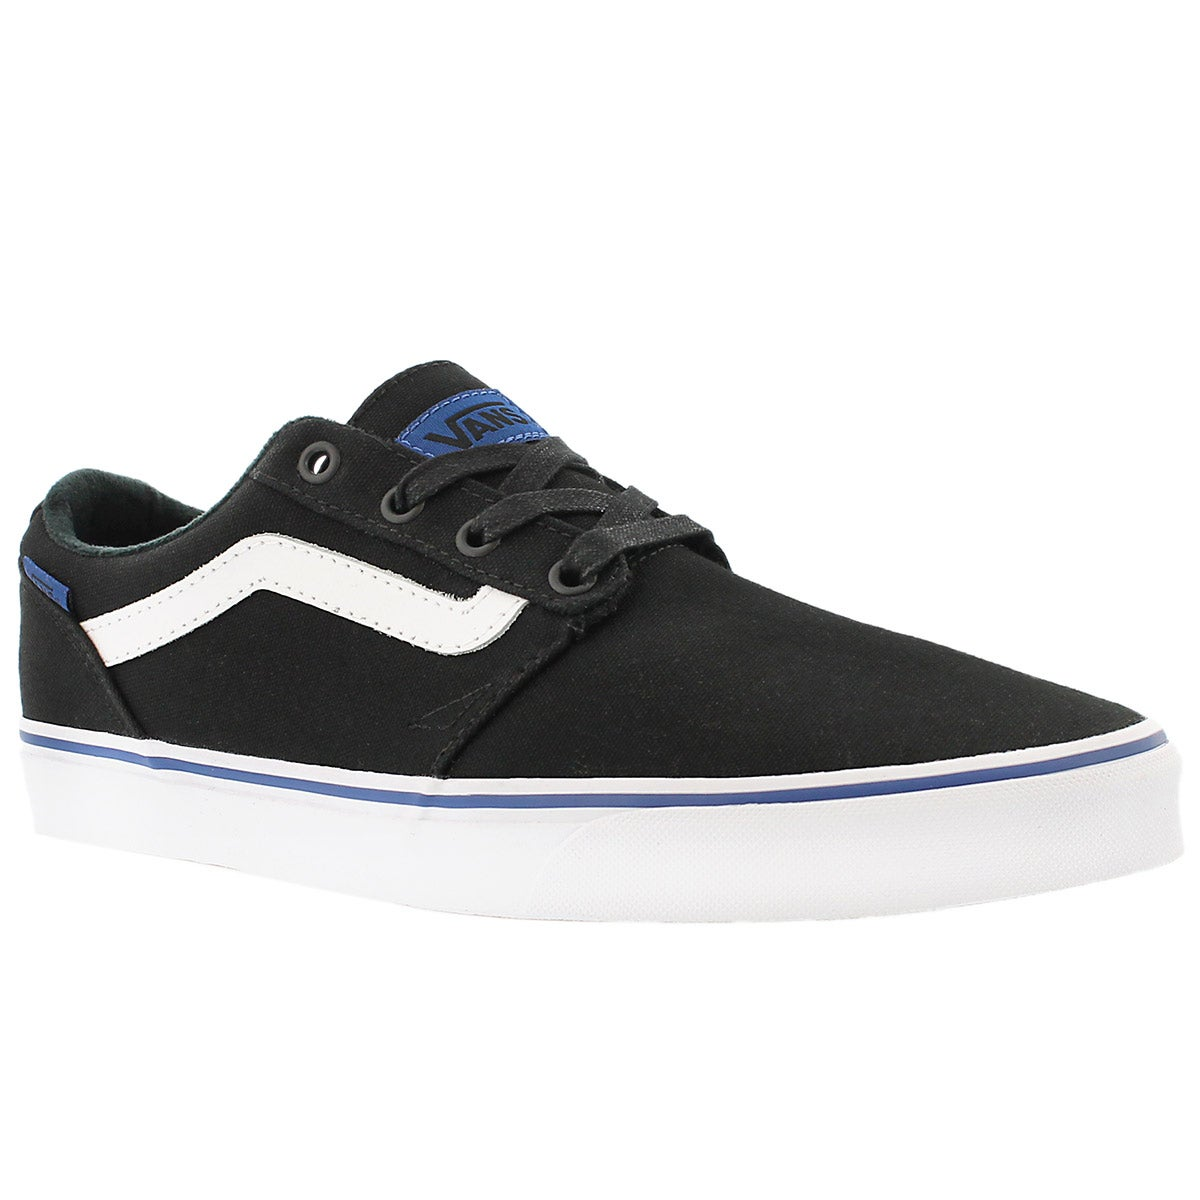 Men's CHAPMAN STRIPE black/blue sneakers